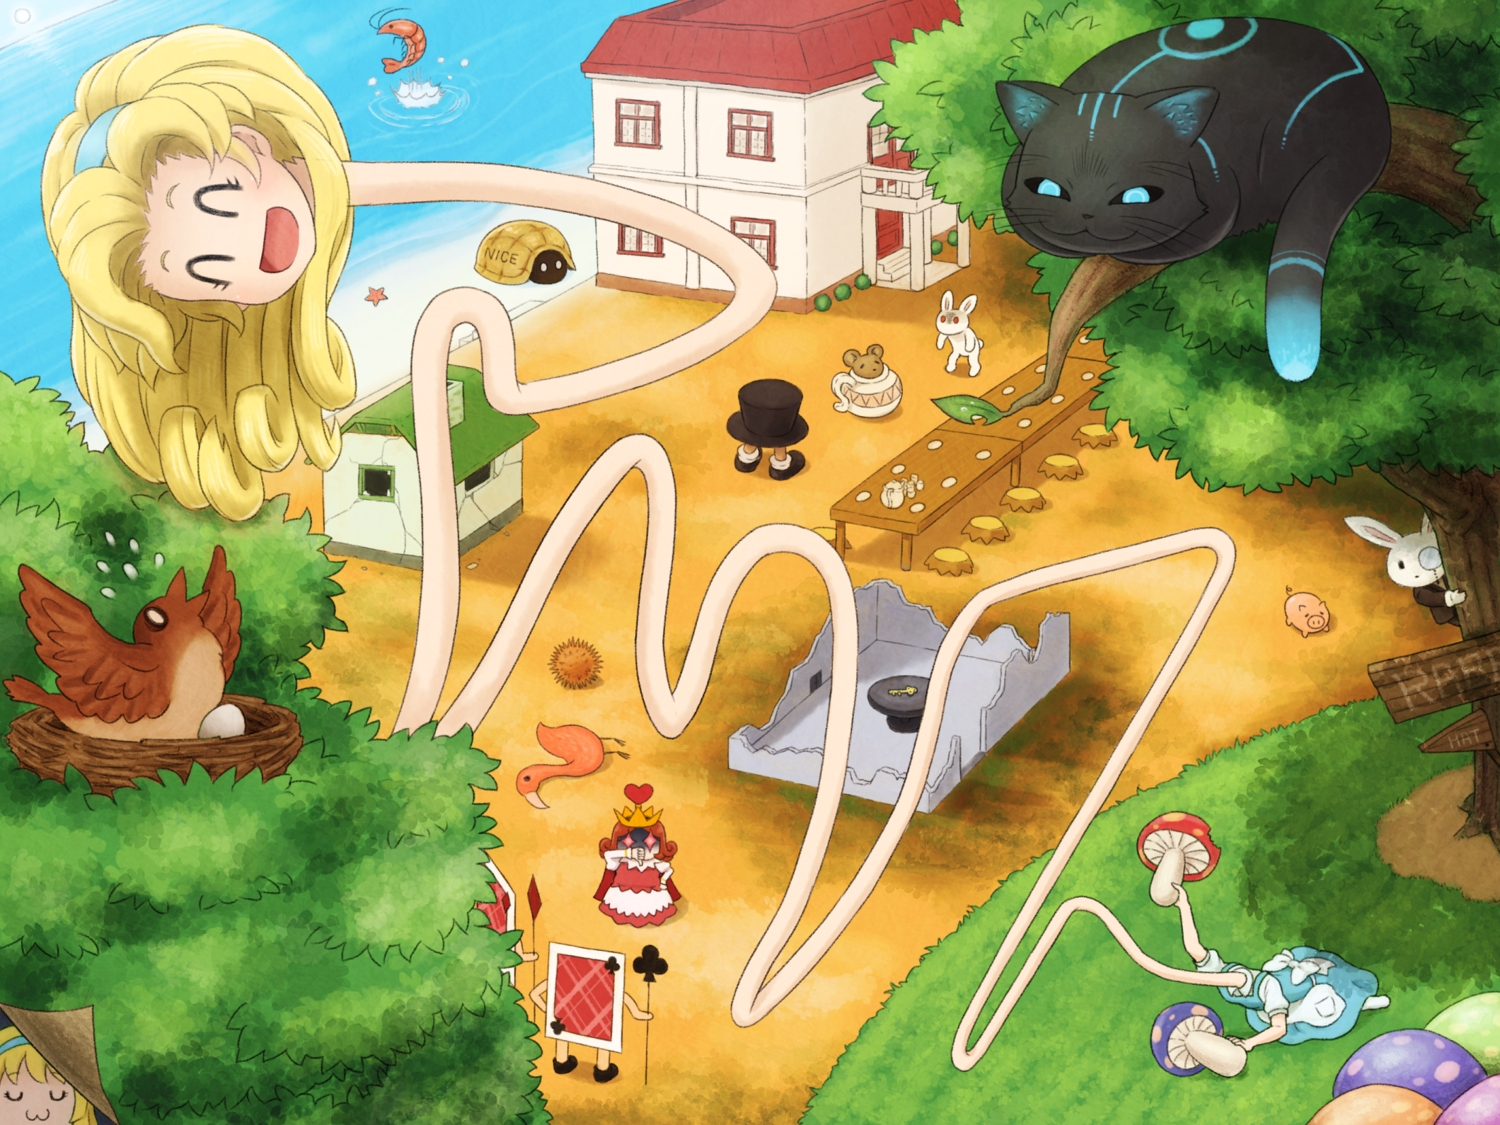 alice_in_wonderland alice_(wonderland) animal bird blonde_hair building cape cat cat_smile cheshire_cat crown food glasses hat headband long_hair mouse queen_of_hearts rabbit red_hair shirosato tree turtle water white_rabbit